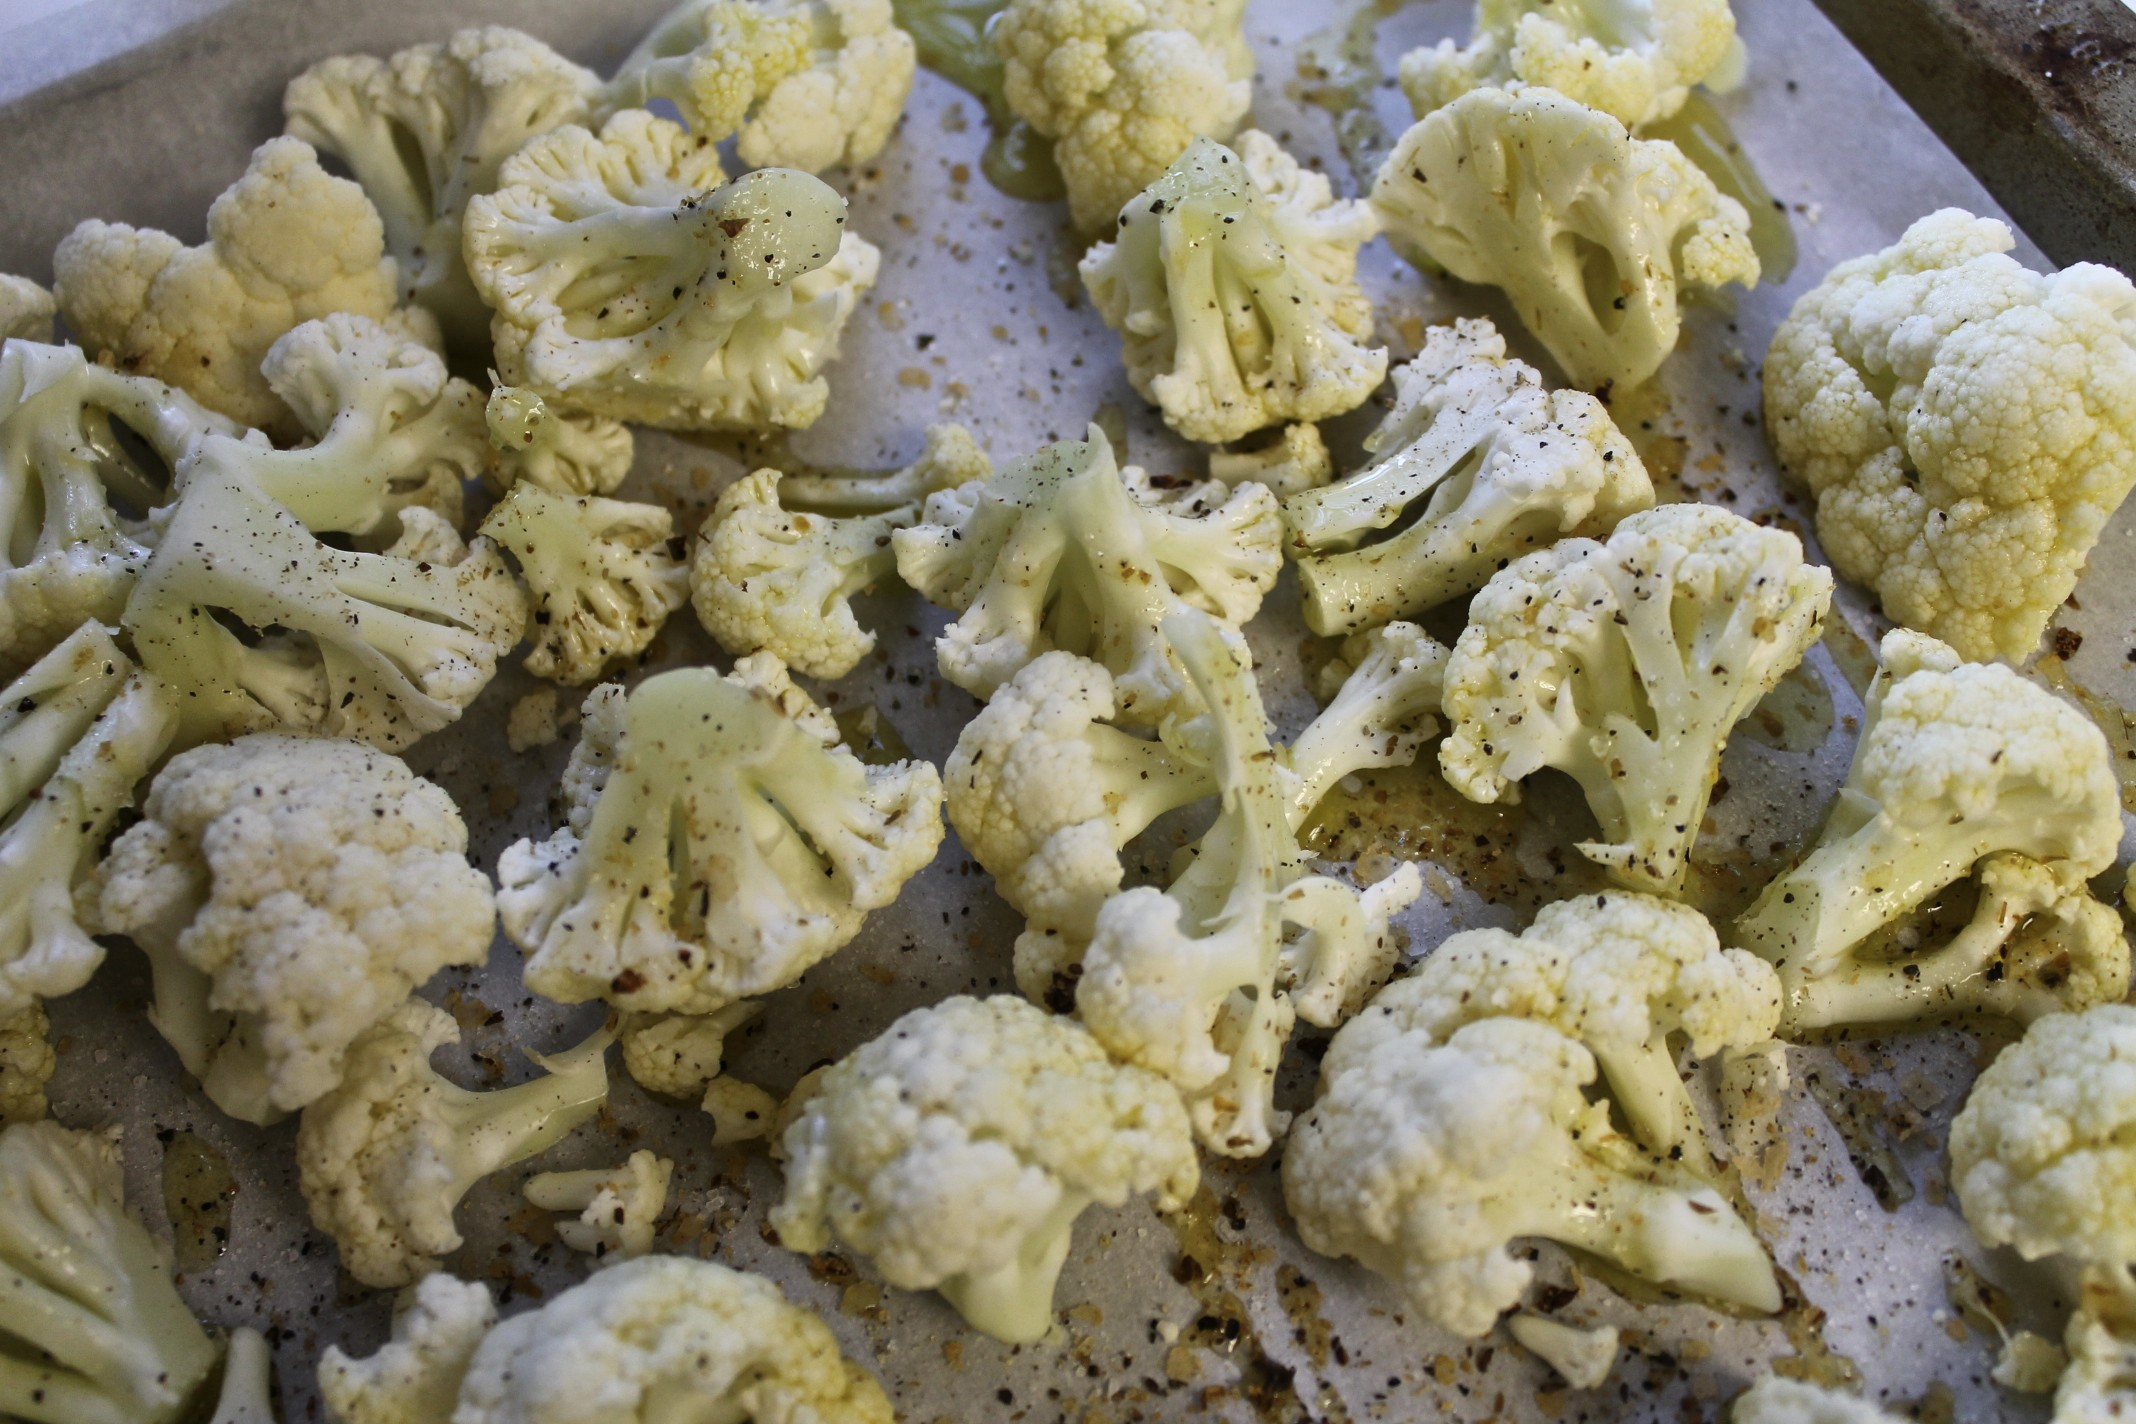 ... pine nuts recipes cauliflower pasta with pecorino grated egg and pine